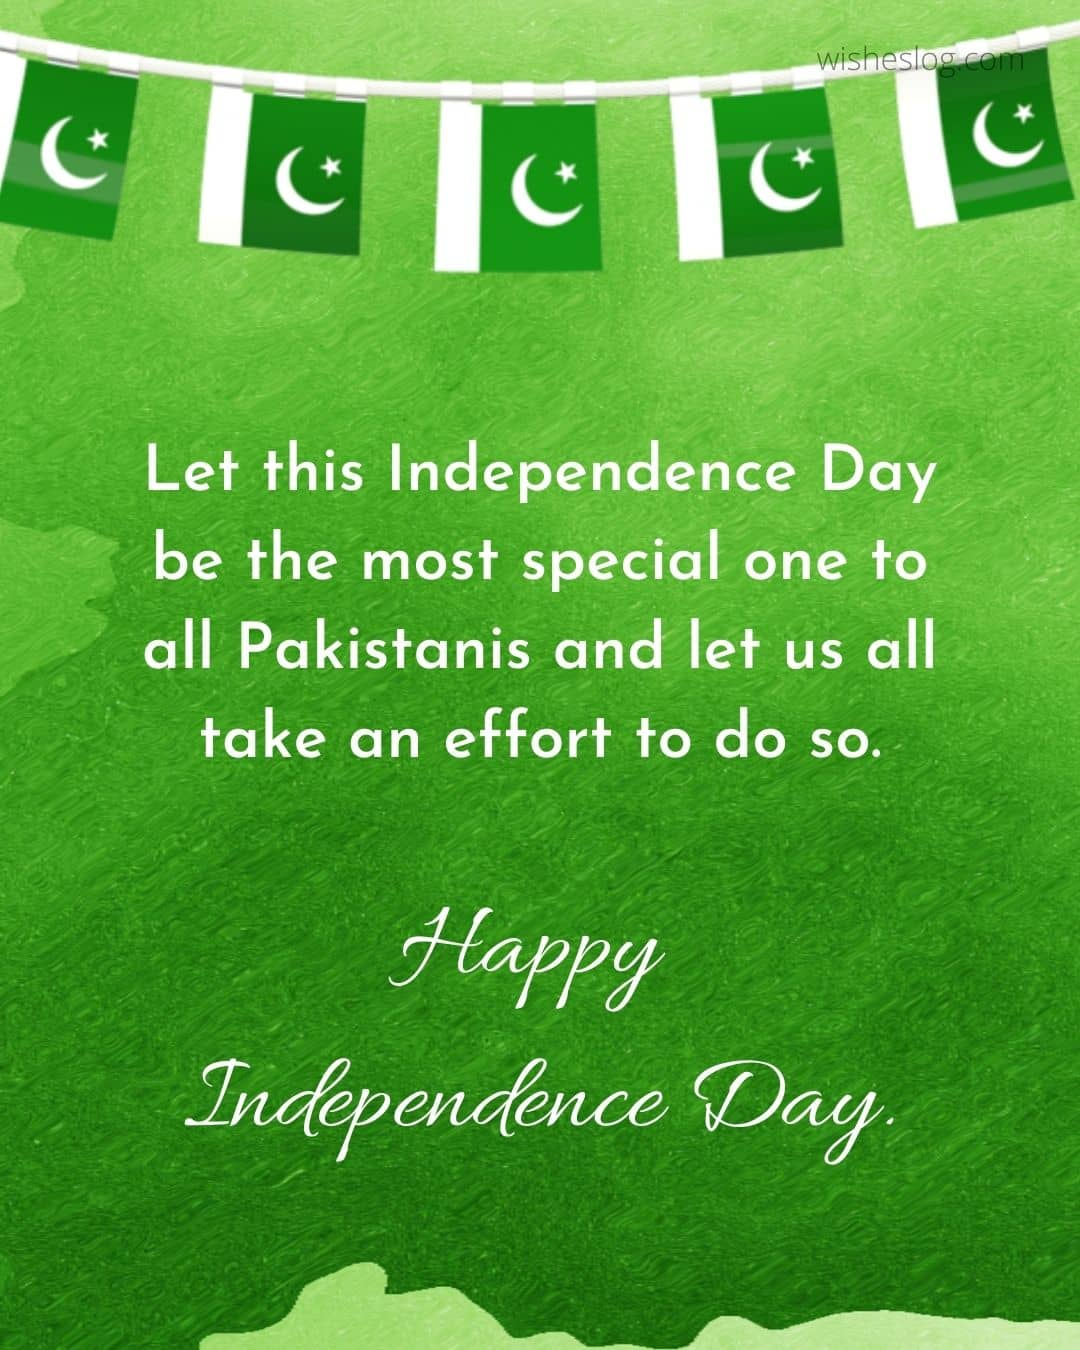 pakistan-independence-day-12